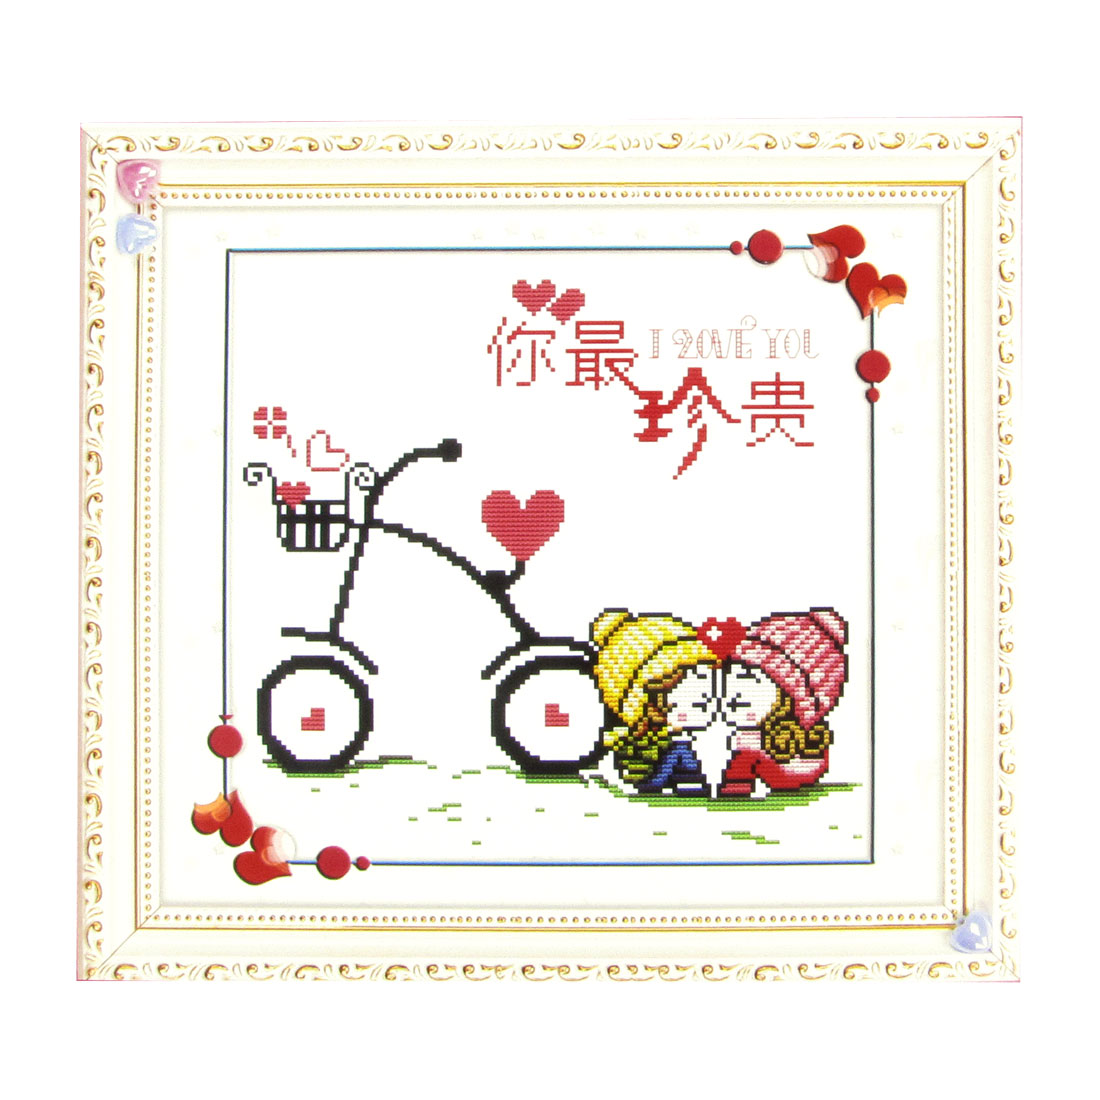 Boy Girl Heart Bike Print Stamped Cross Stitch Counted Kit for Lady Woman